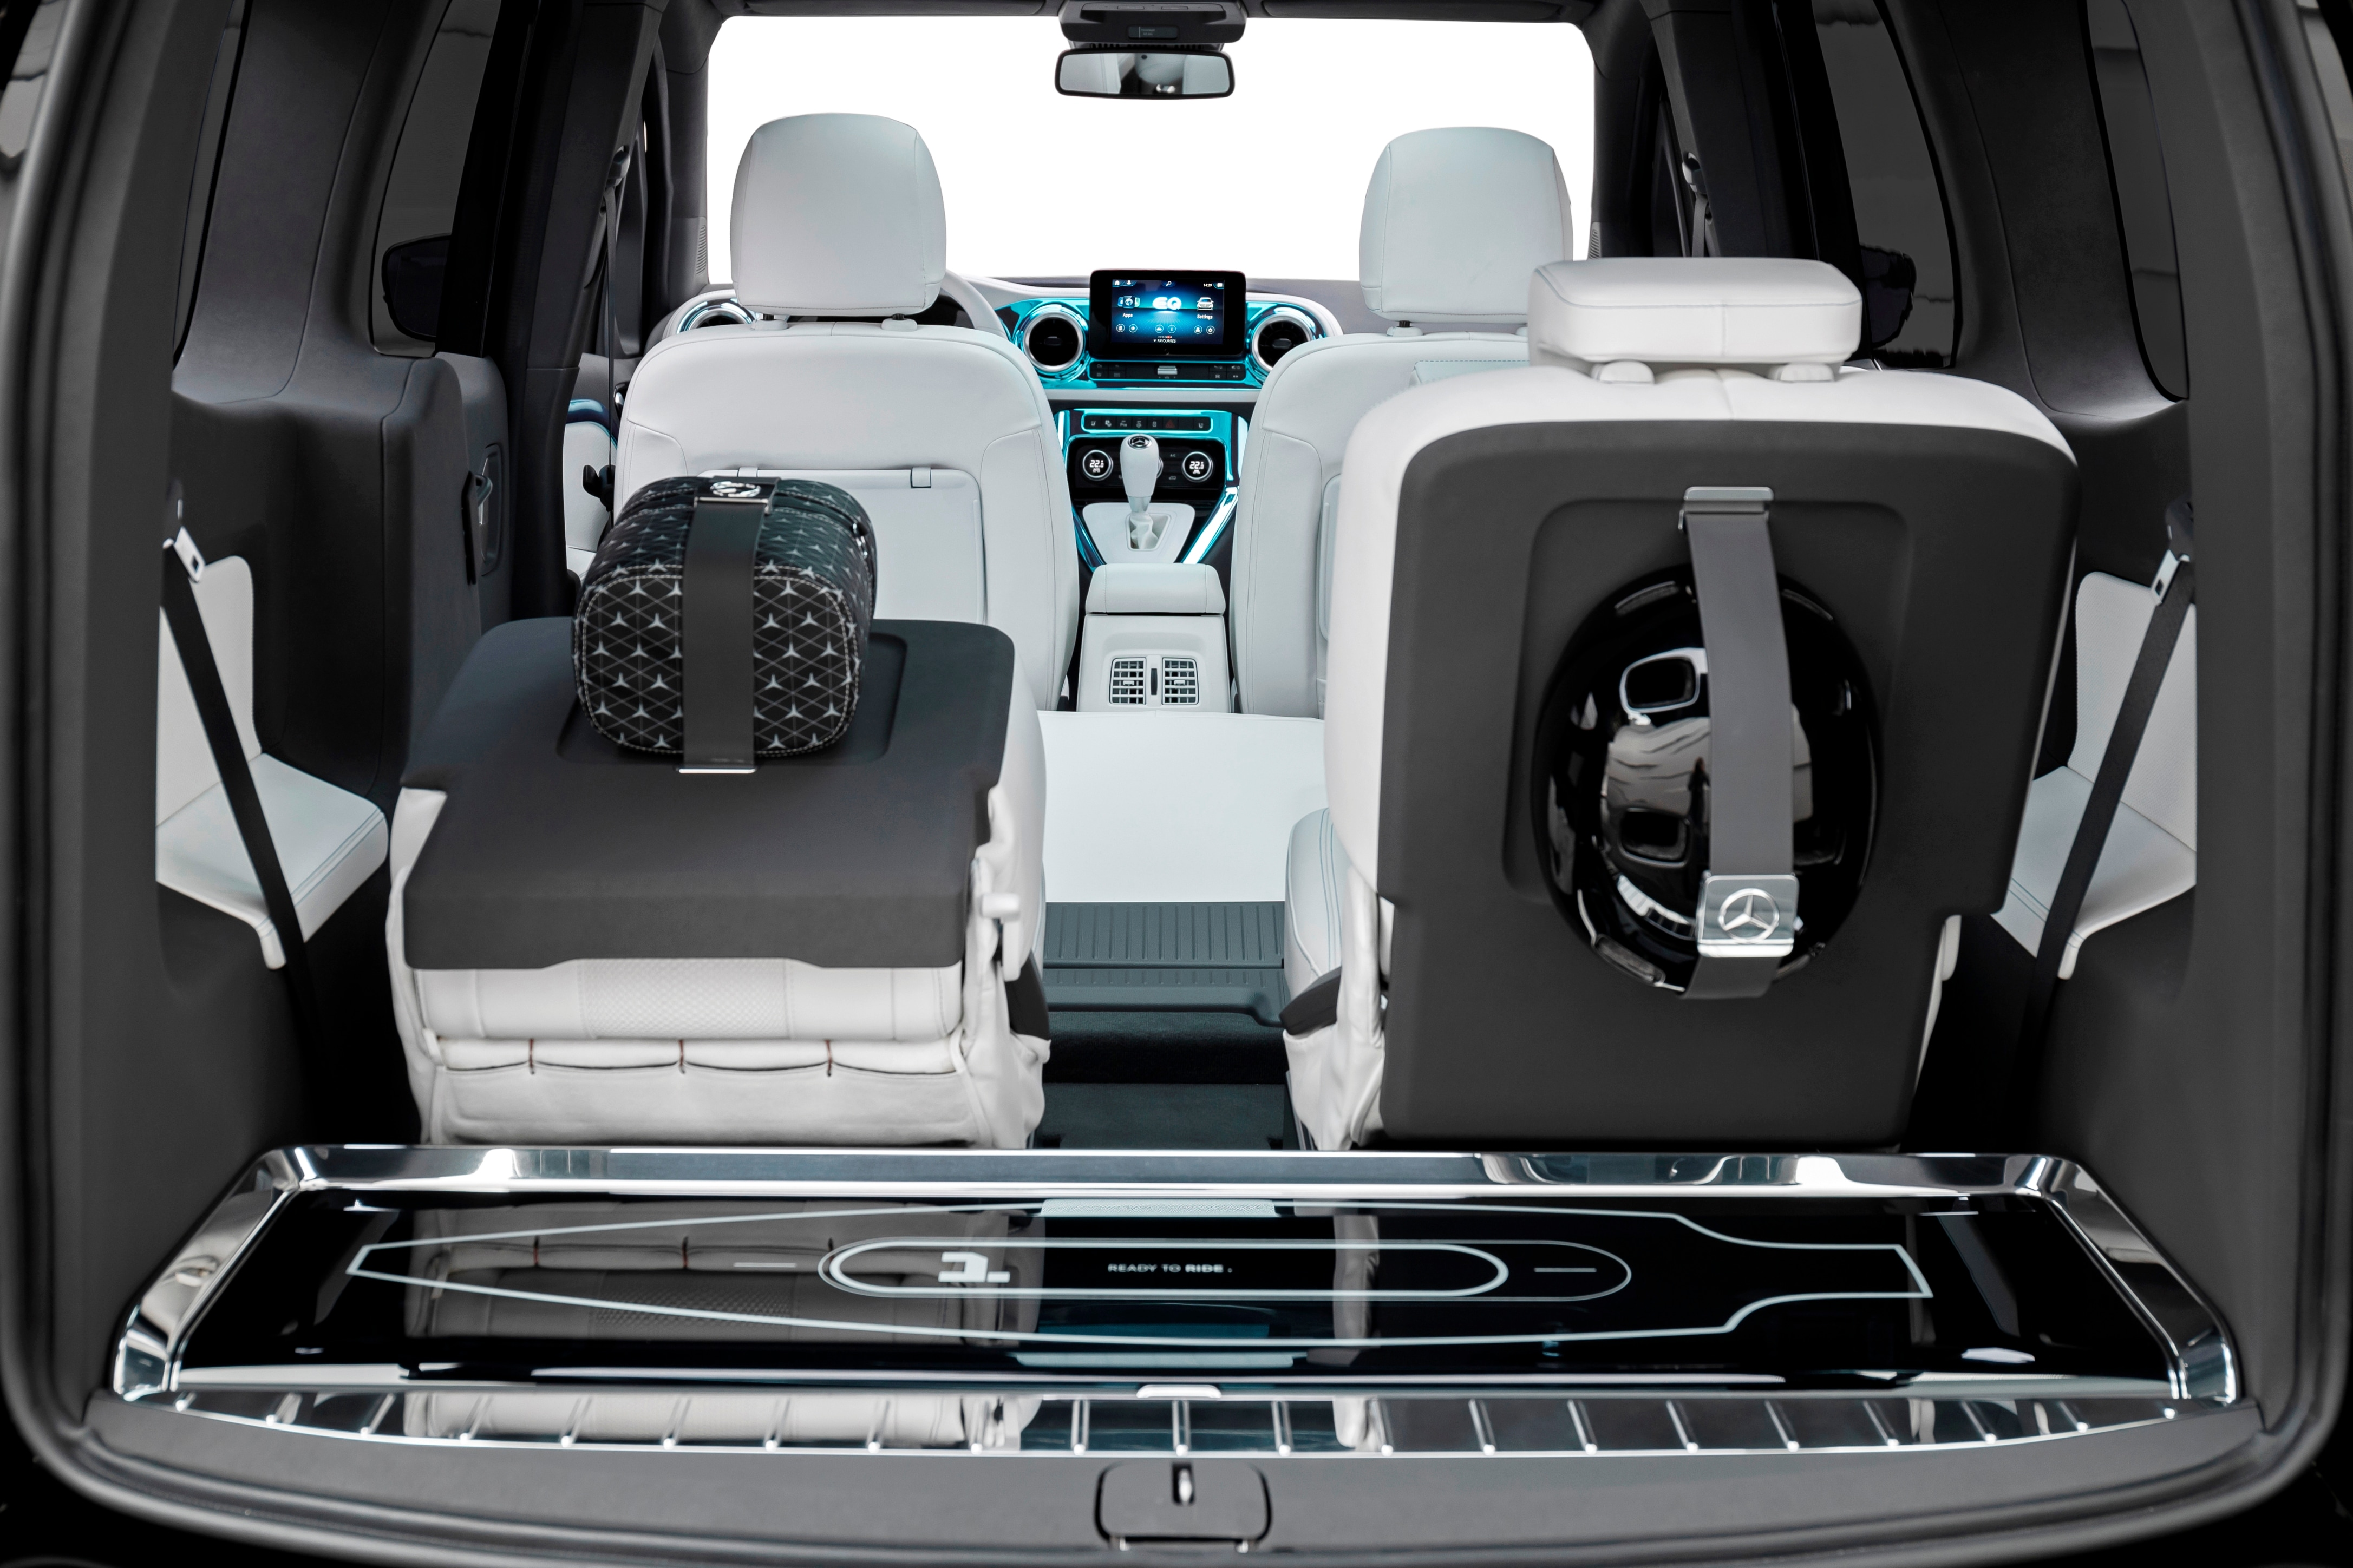 The steep rear with an upright tailgate and window allows for a spacious cargo space. The cargo space can be increased by folding down the seats in the third row. For the show car, Mercedes has also integrated an electric longboard in the cargo area.